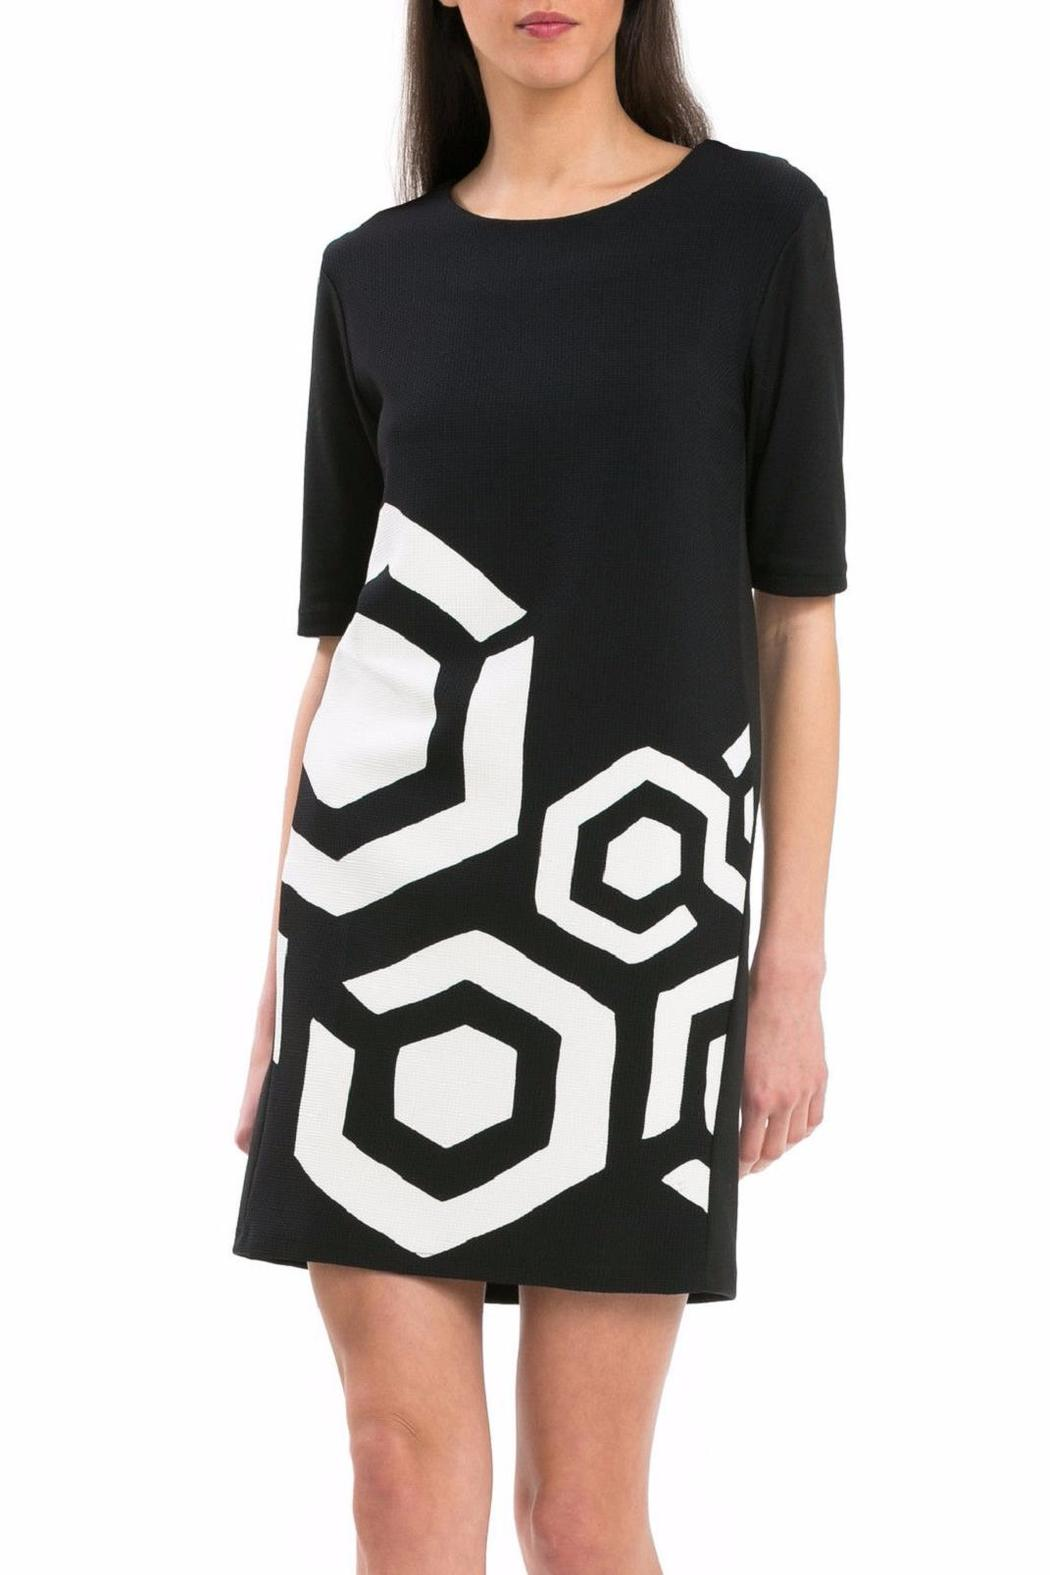 Desigual Cubism Dress Front Cropped Image